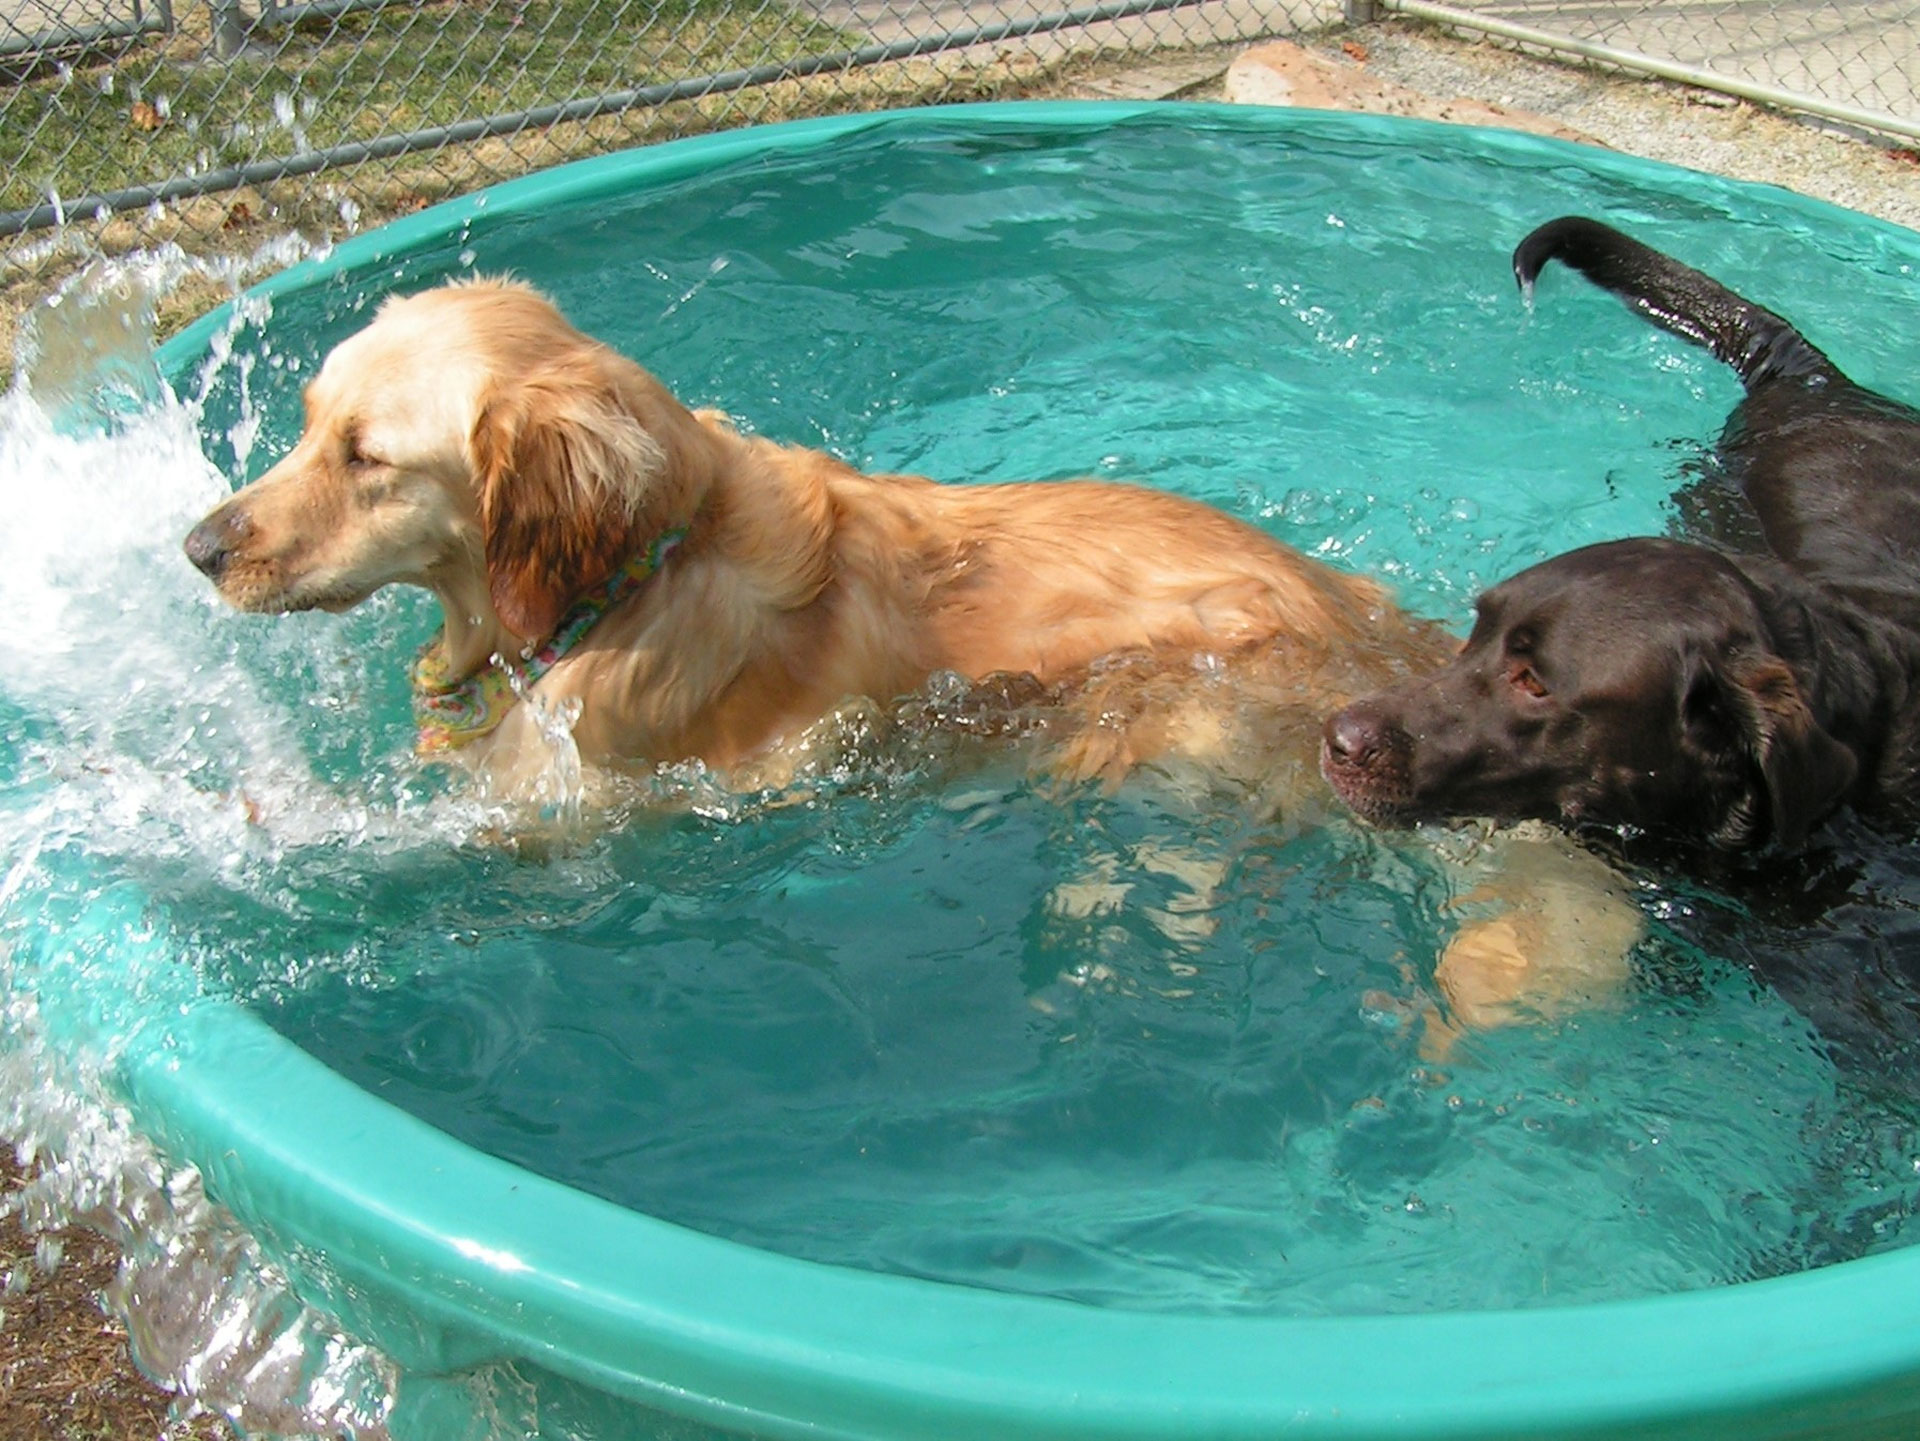 Dogs in water tub